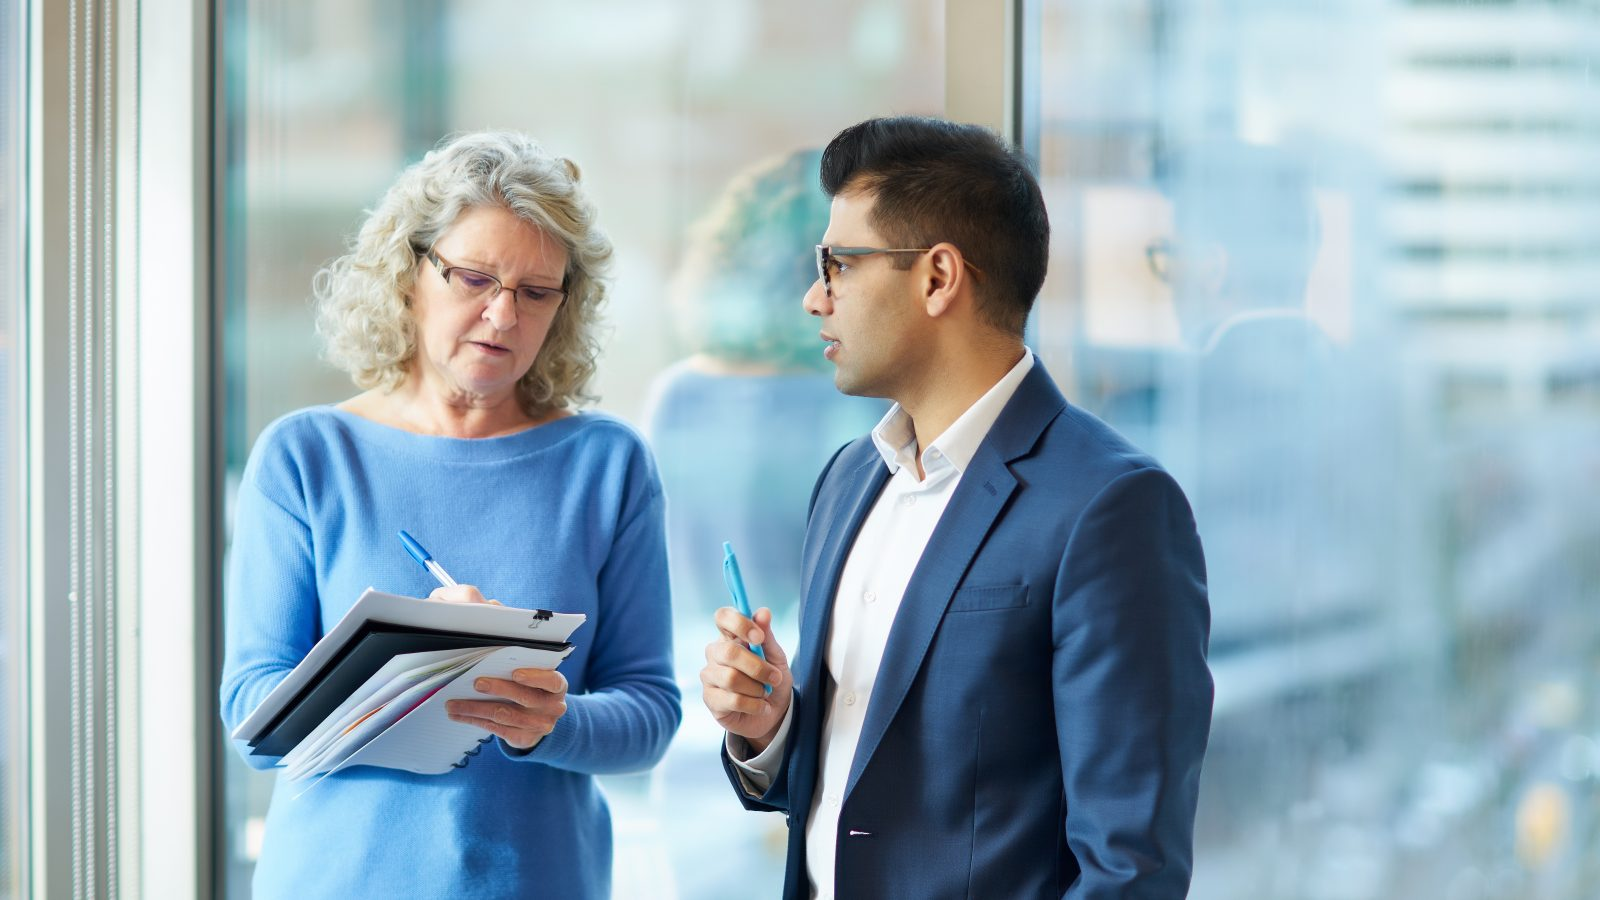 man speaking to woman taking notes in front of window